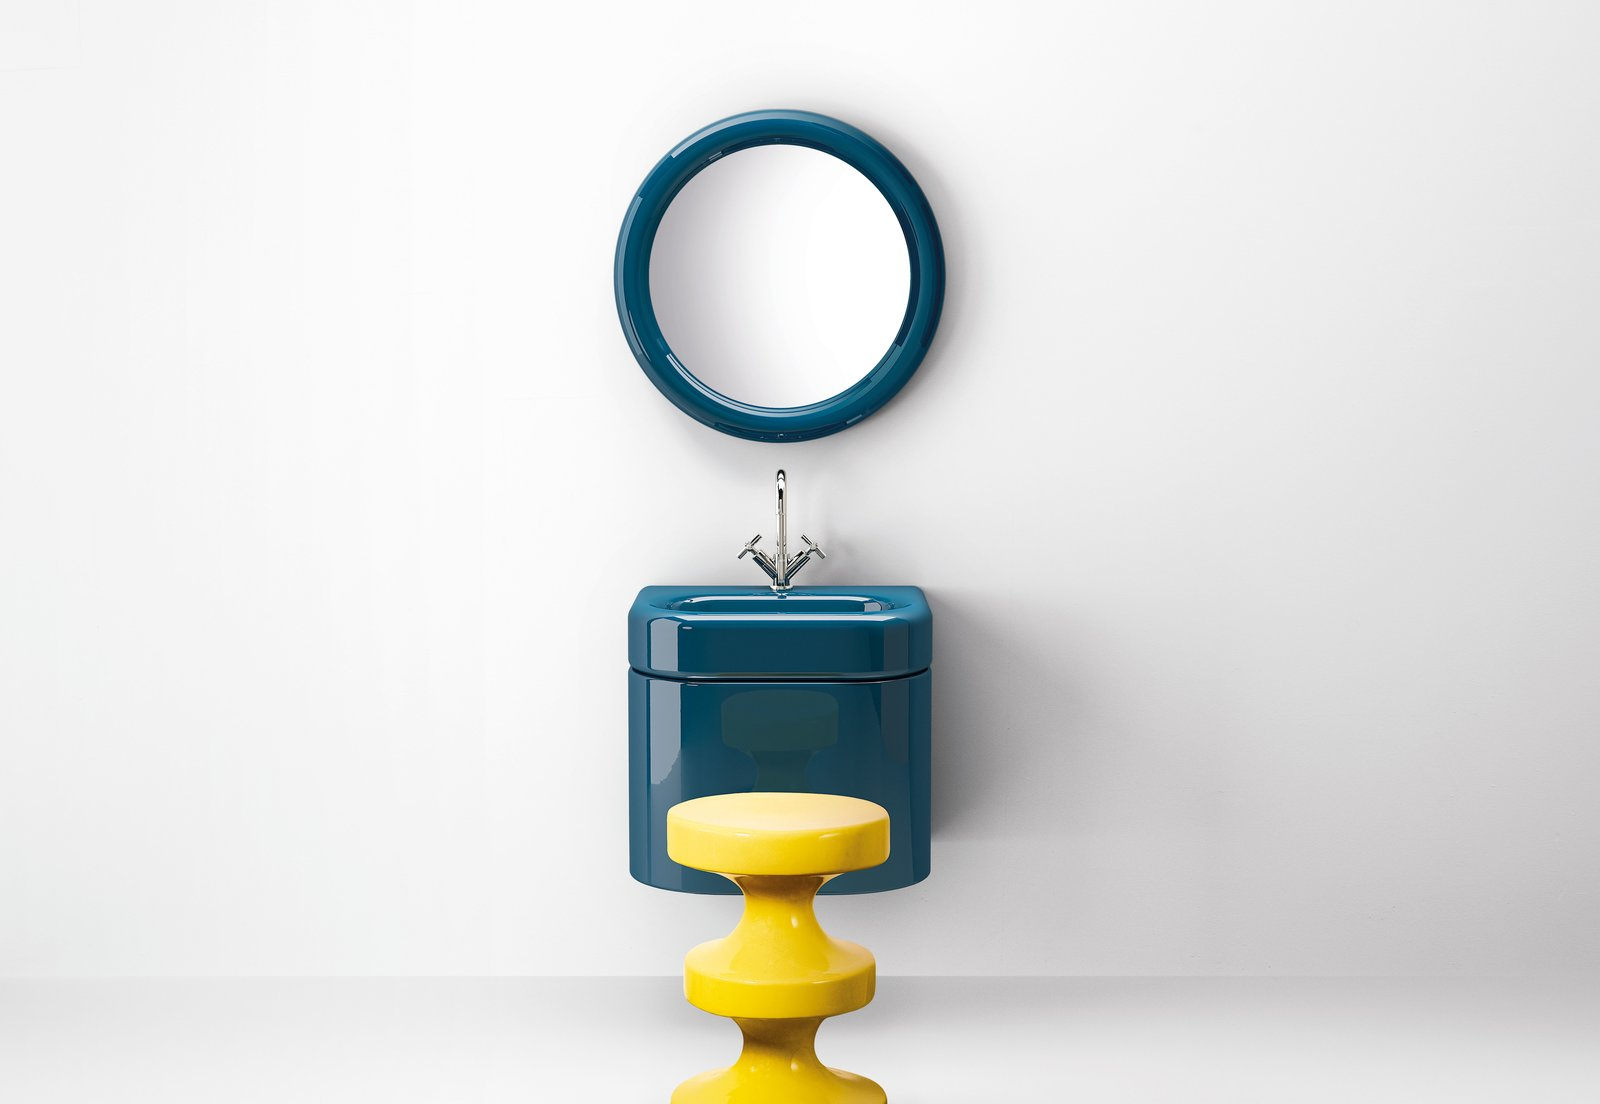 Bath Room and Wall Mount Sink The collection of bathroom fixtures includes a wall-mounted sink and vanity, a bathtub, and a round mirror.  Photo 2 of 10 in Trend Report: Bathroom Fixtures Go Bold in a Rainbow of Retro Hues